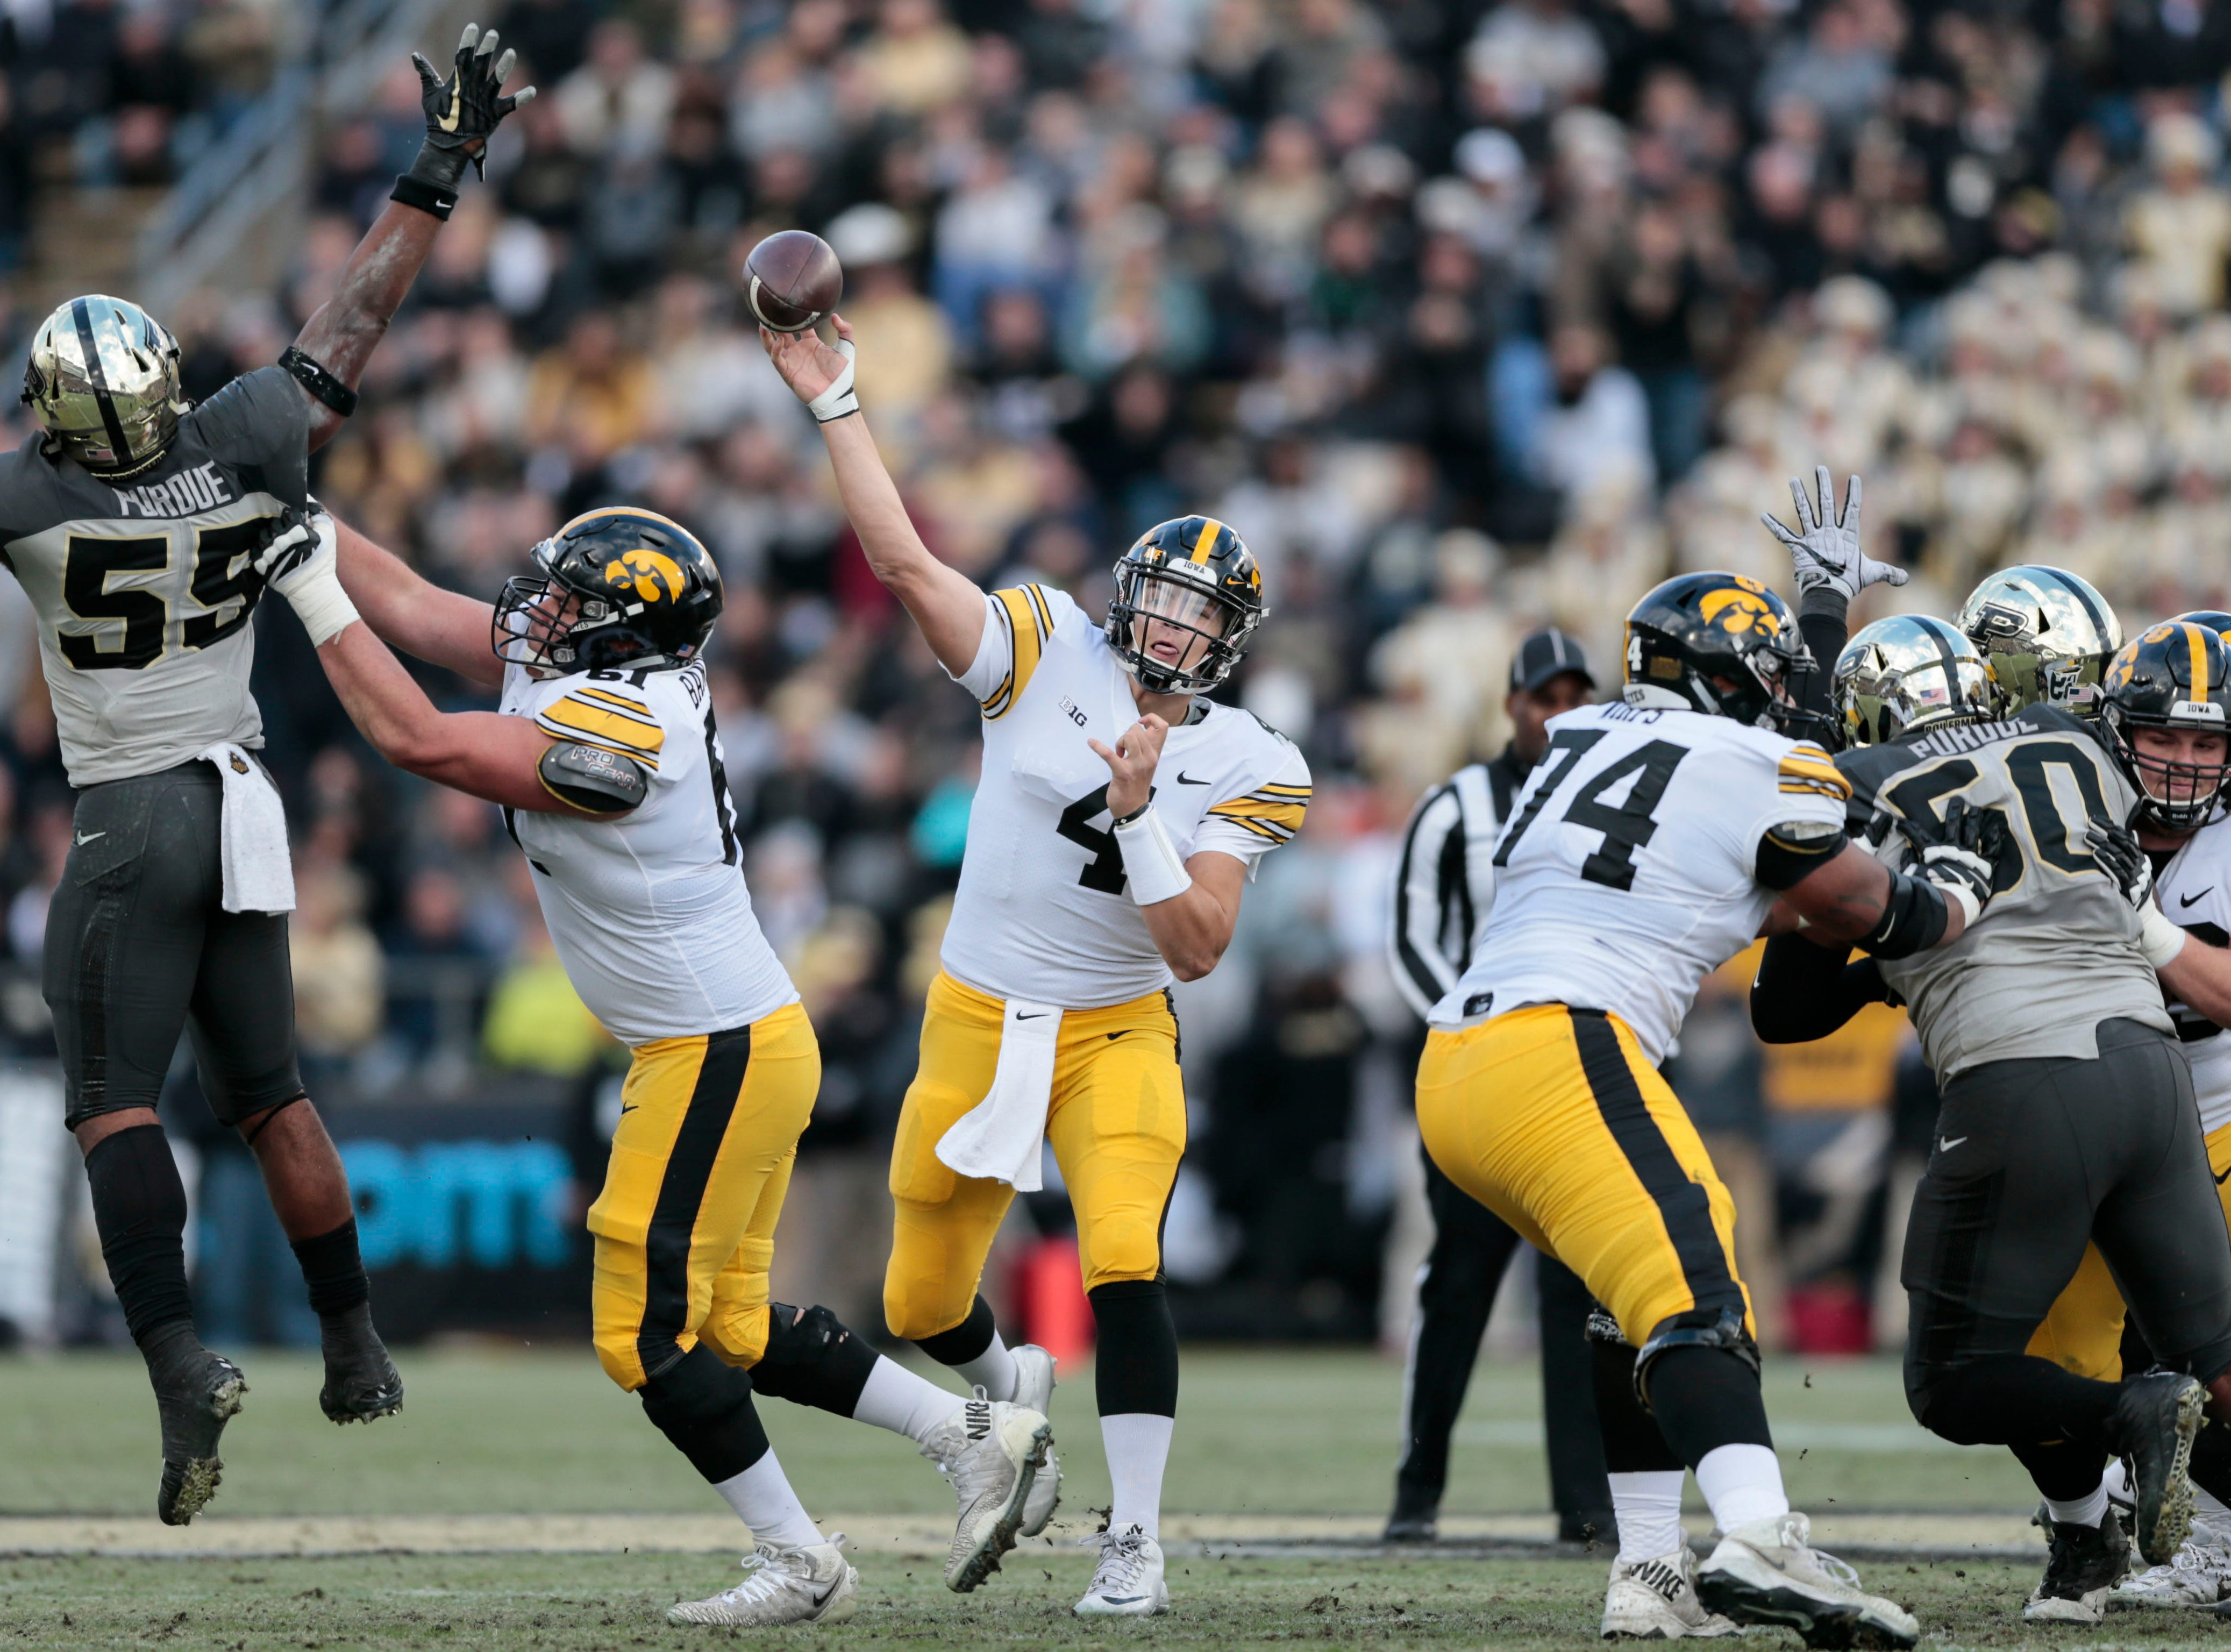 Iowa quarterback Nate Stanley (4) throws a pass as Purdue linebacker Derrick Barnes (55) leaps to defend against it in the first half of an NCAA college football game in West Lafayette, Ind., Saturday, Nov. 3, 2018.